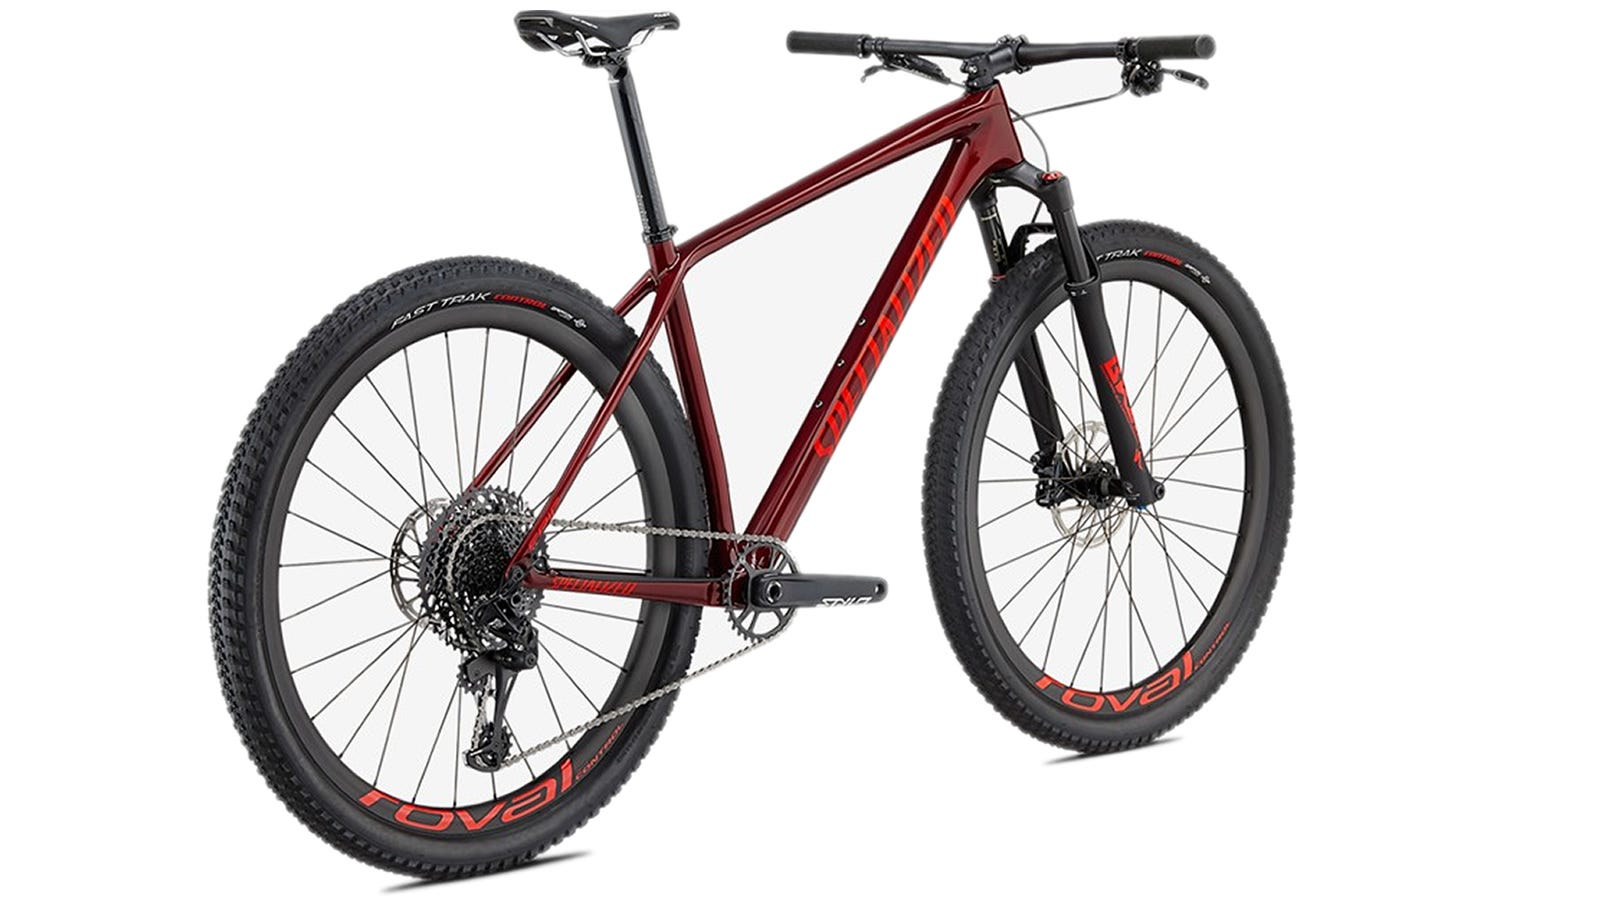 The Specialized Epic Hardtail Expert mountain bike.